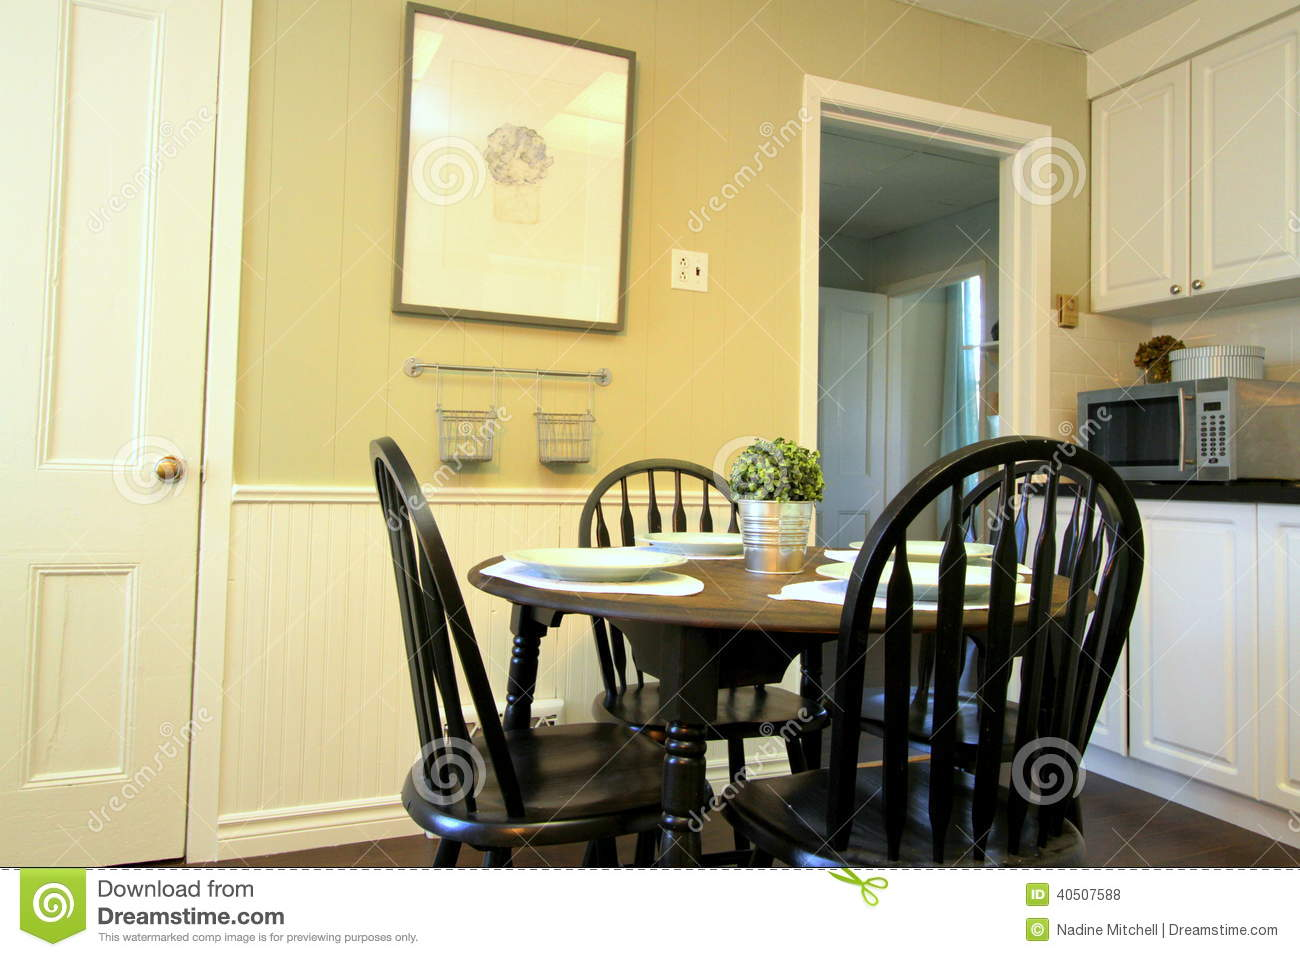 Kitchen With White Cabinets And Round Table And Chairs Stock Photo Image Of Chairs Walnut